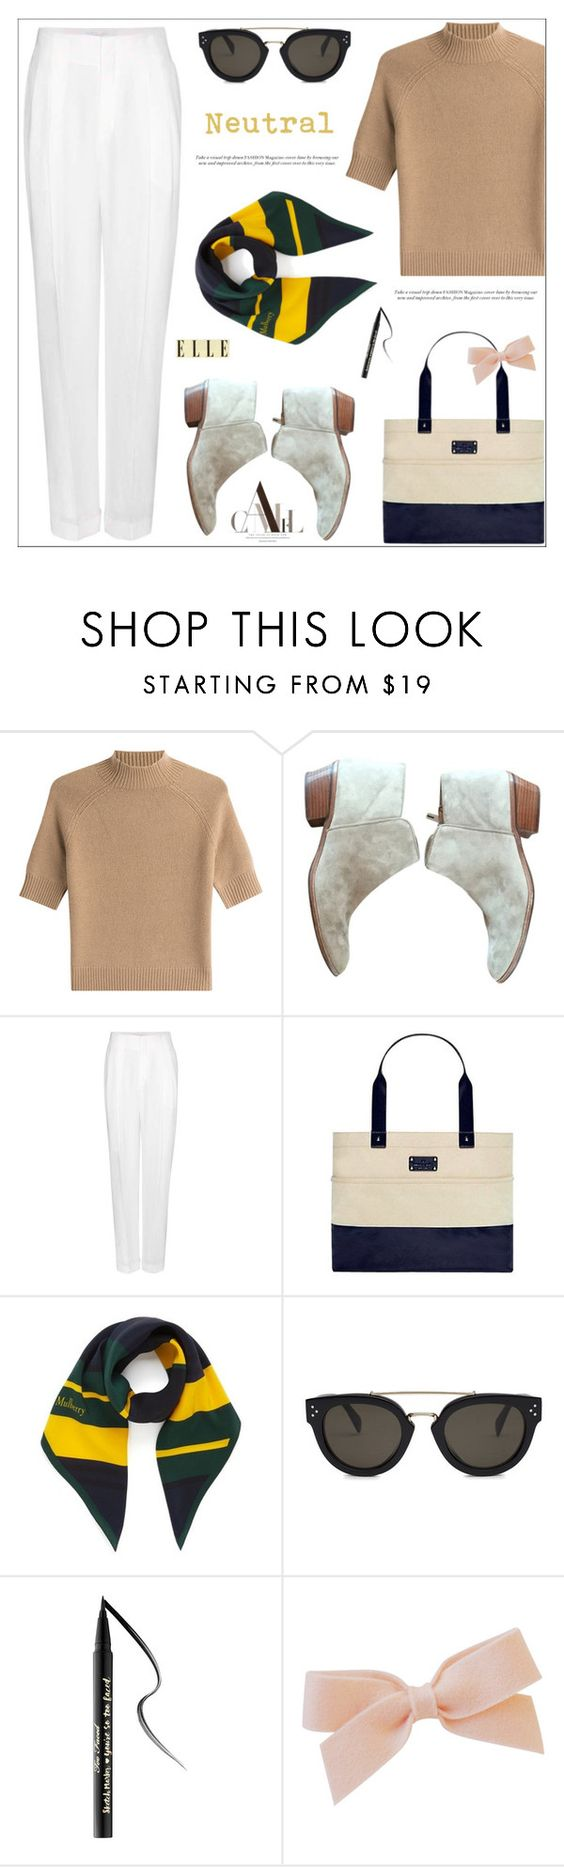 """Neutral"" by arohii ❤ liked on Polyvore featuring Theory, Sam Edelman, Chloé, Kate Spade, Mulberry, CÉLINE, Too Faced Cosmetics, chloe and cashmere"